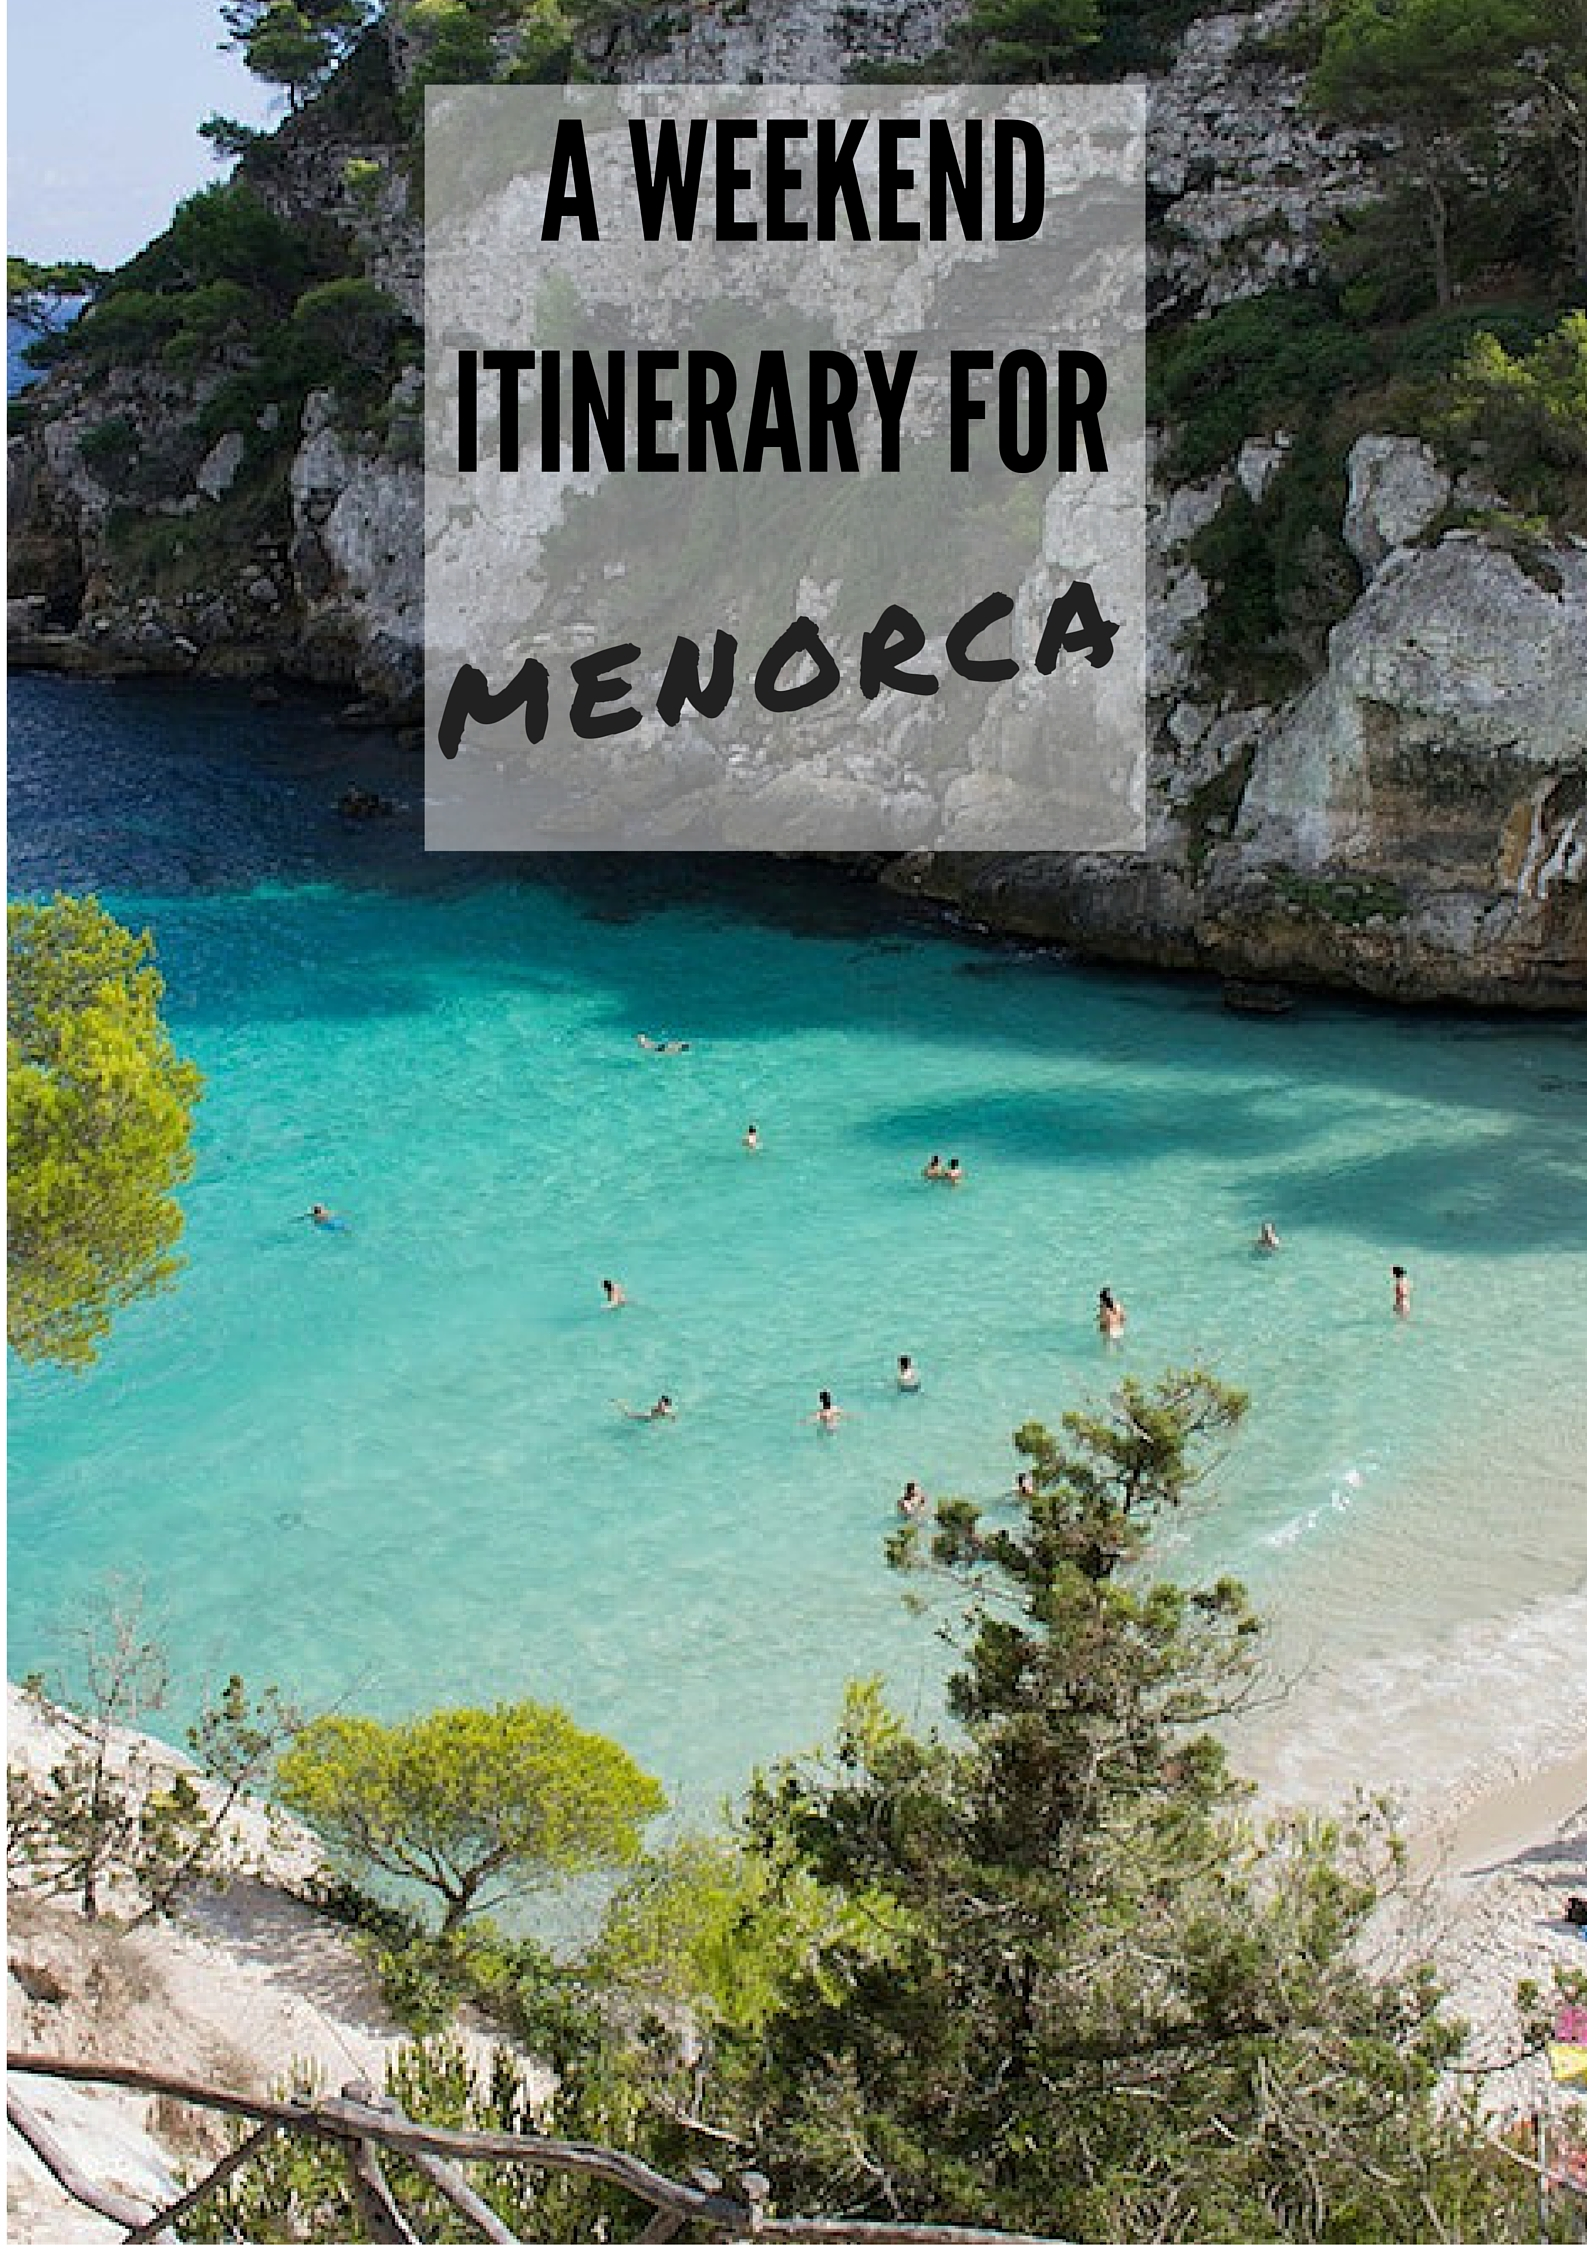 Weekend itinerary for Menorca on The Travel Hack